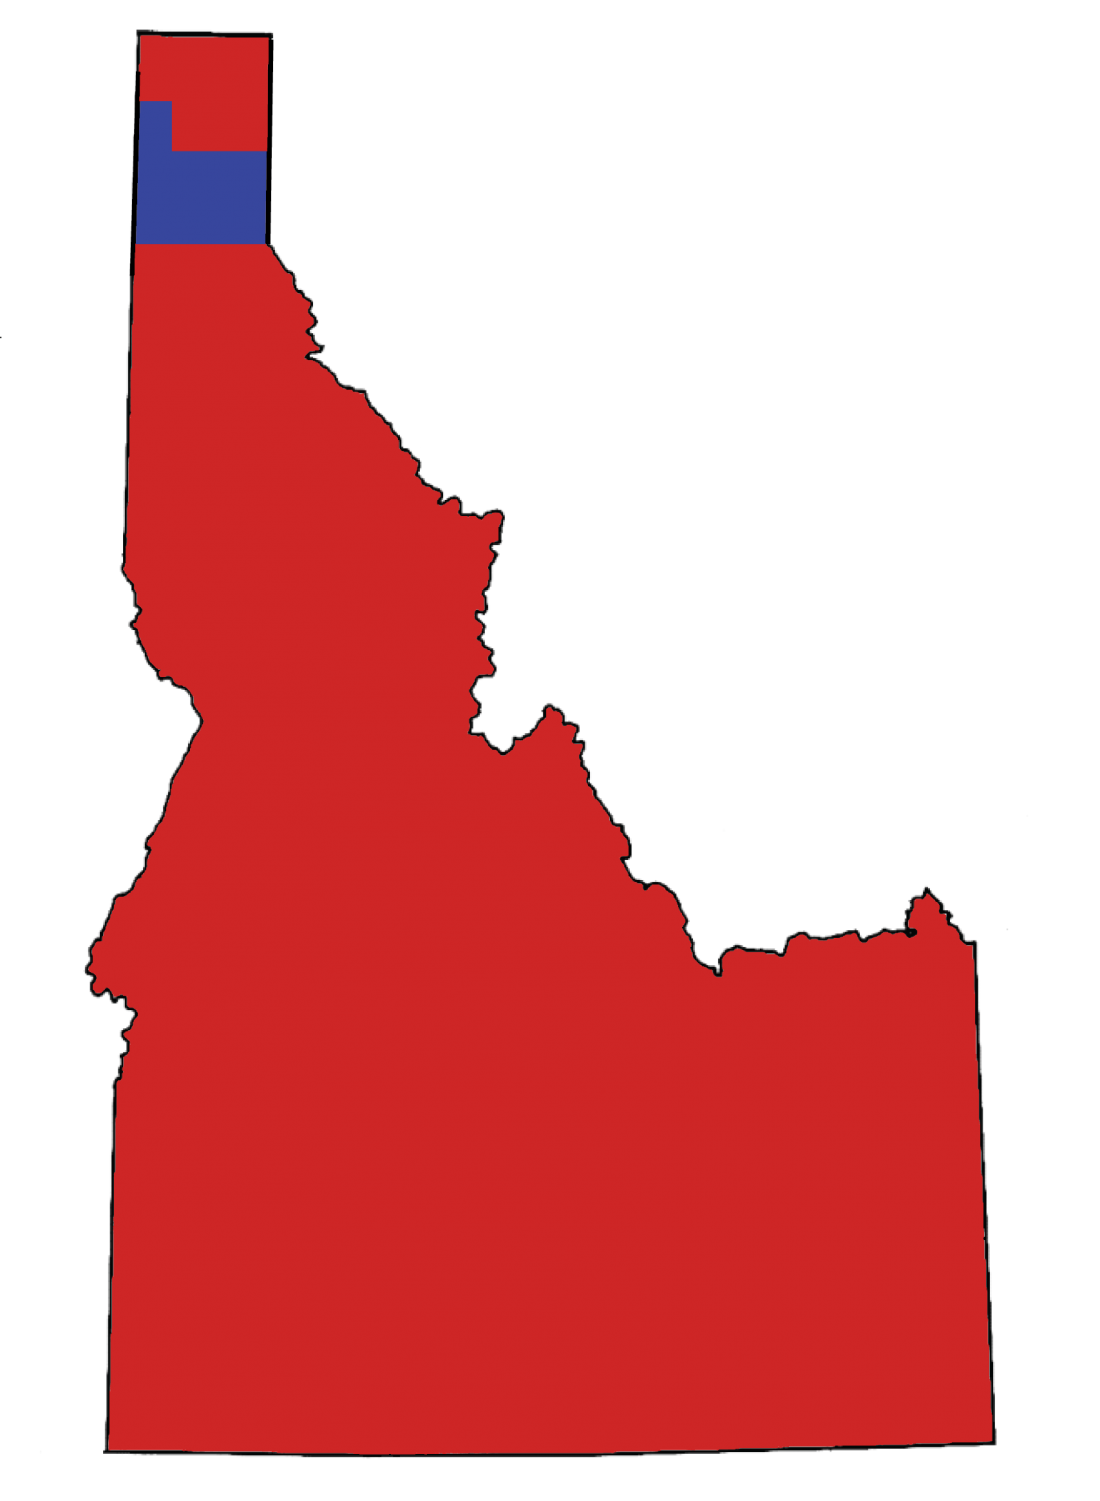 How+Sandpoint%27s+political+views+seemingly+compare+to+the+rest+of+Idaho.